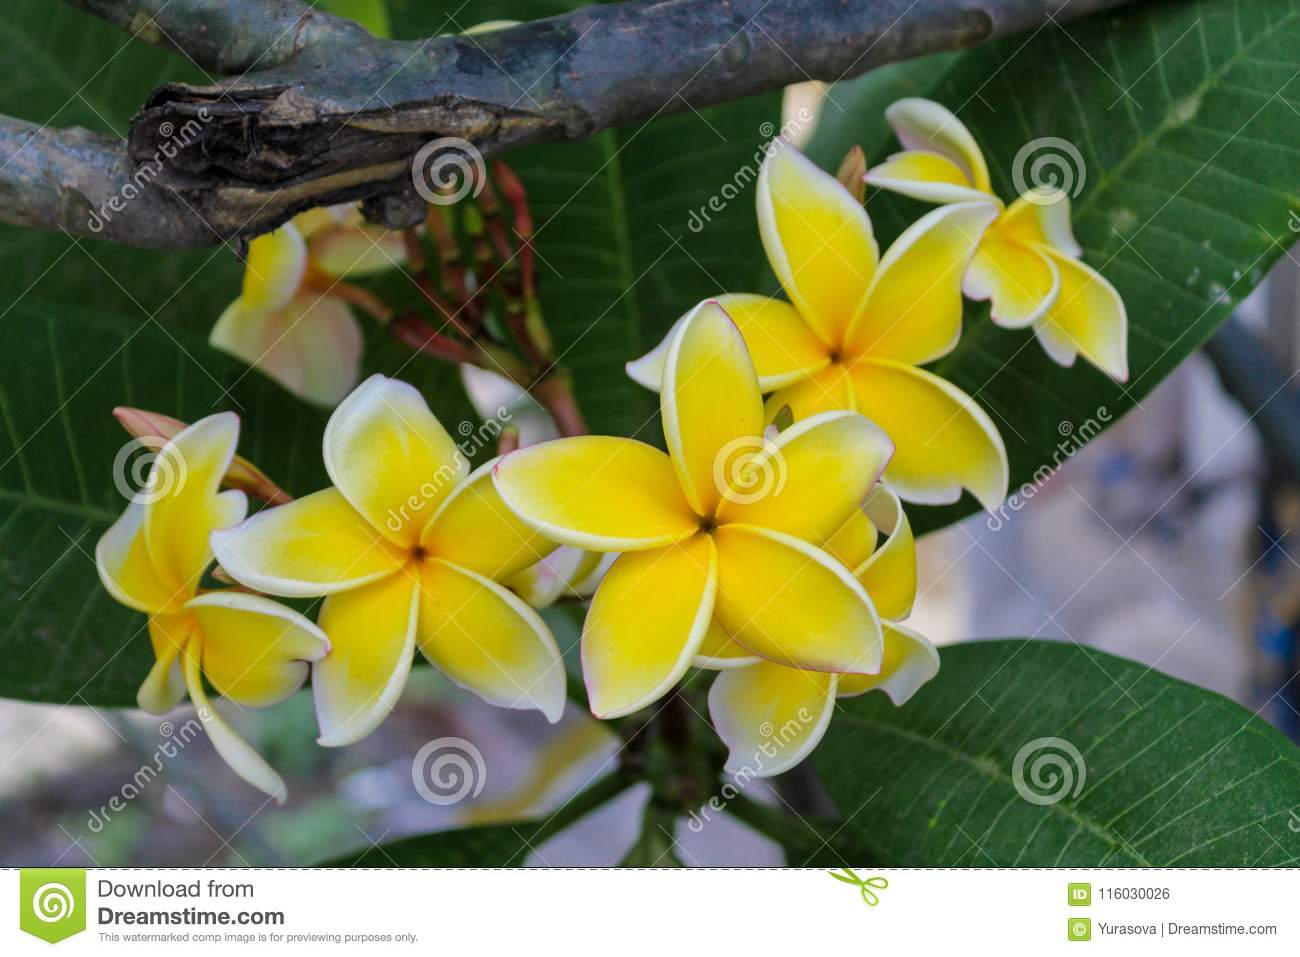 Plumeria Beautiful White And Yellow Flower In The Garden Stock Photo